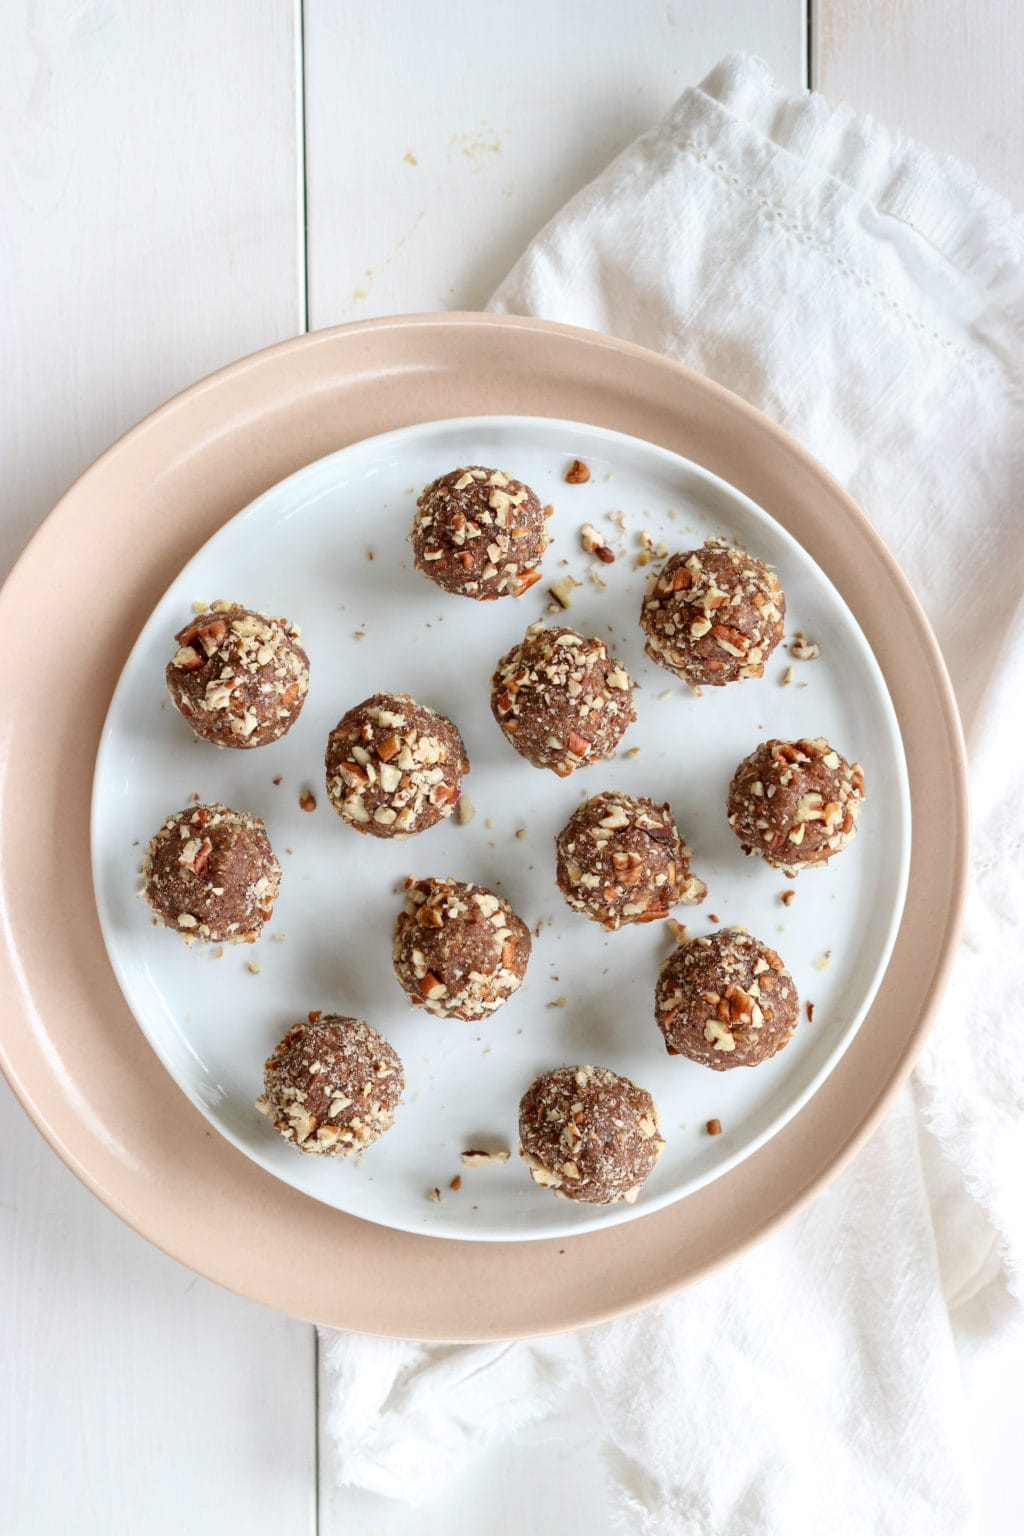 Pecan Pie Energy Balls neatly placed on a white plate over a pink plate over a white cloth. Ingredients include: pecans, dates, vanilla, cinnamon, salt.